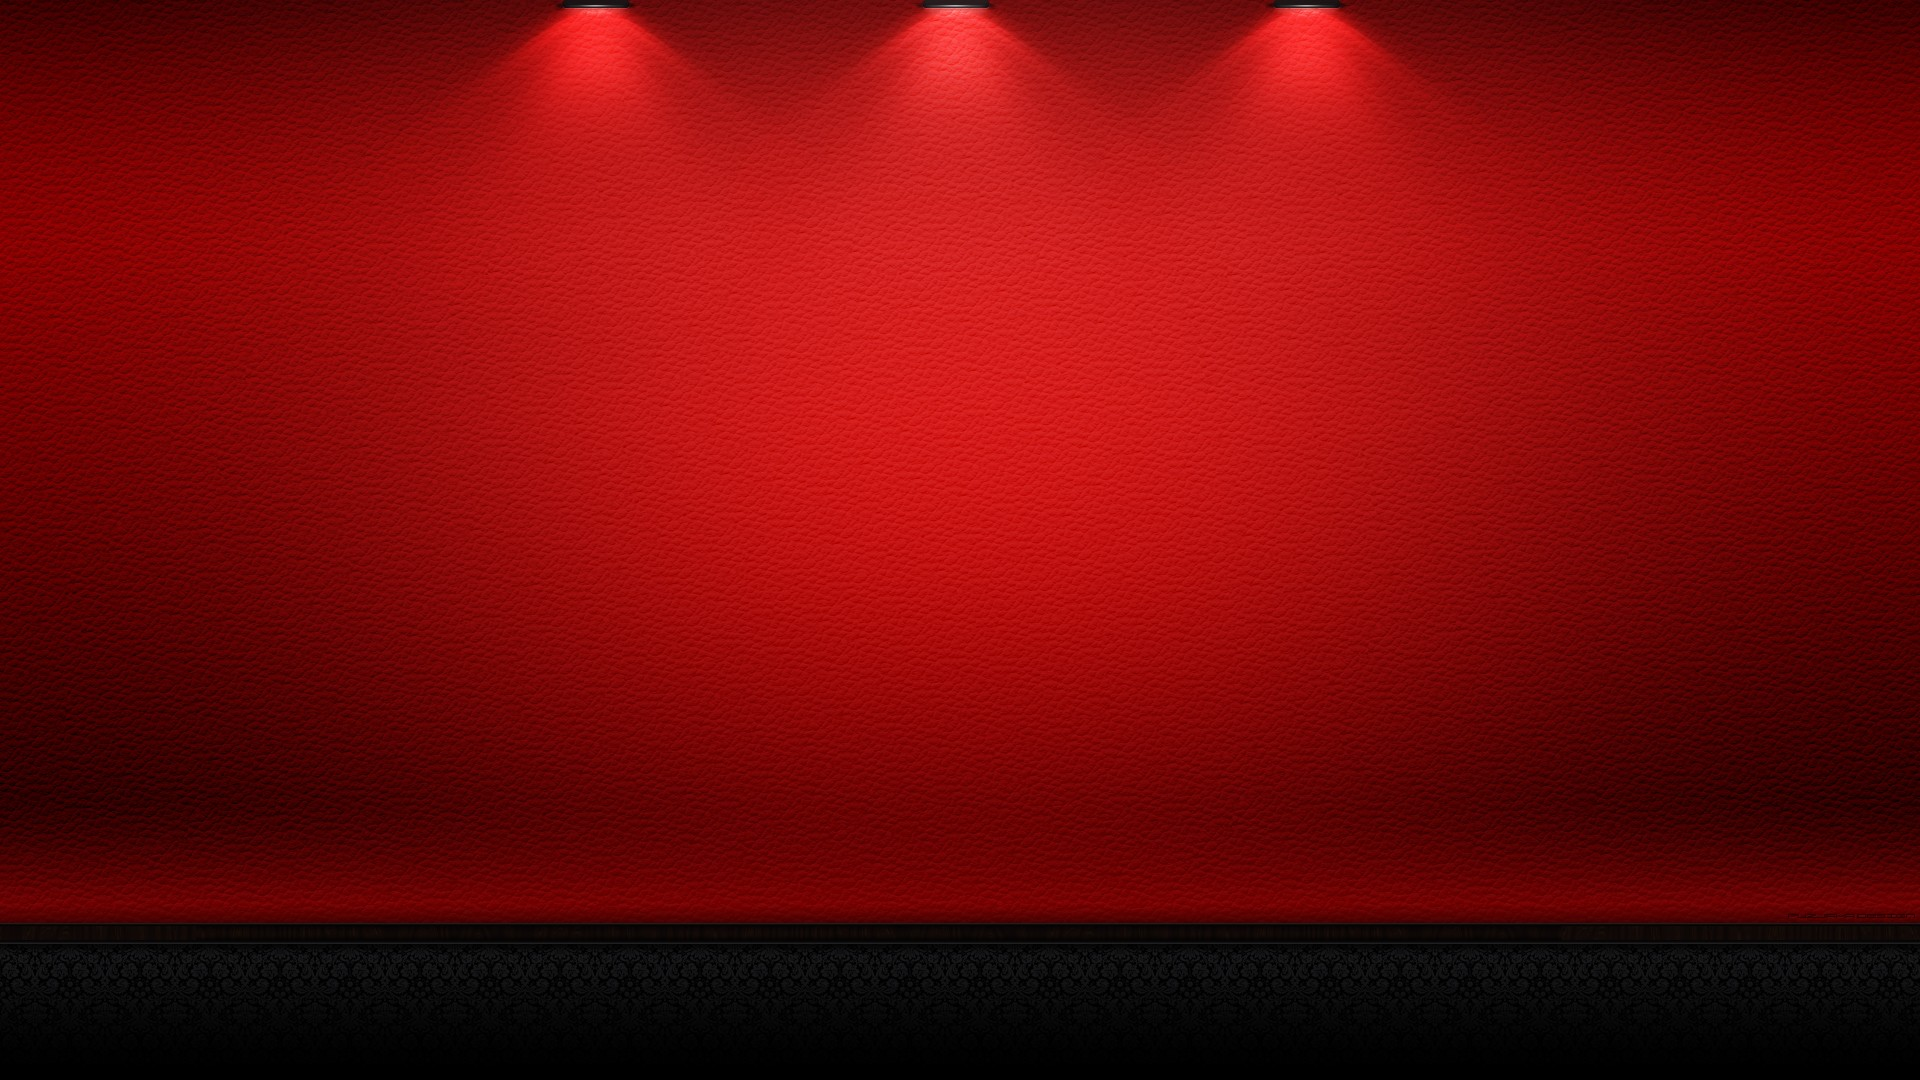 Abstract Background Red Black Background-red-abstract